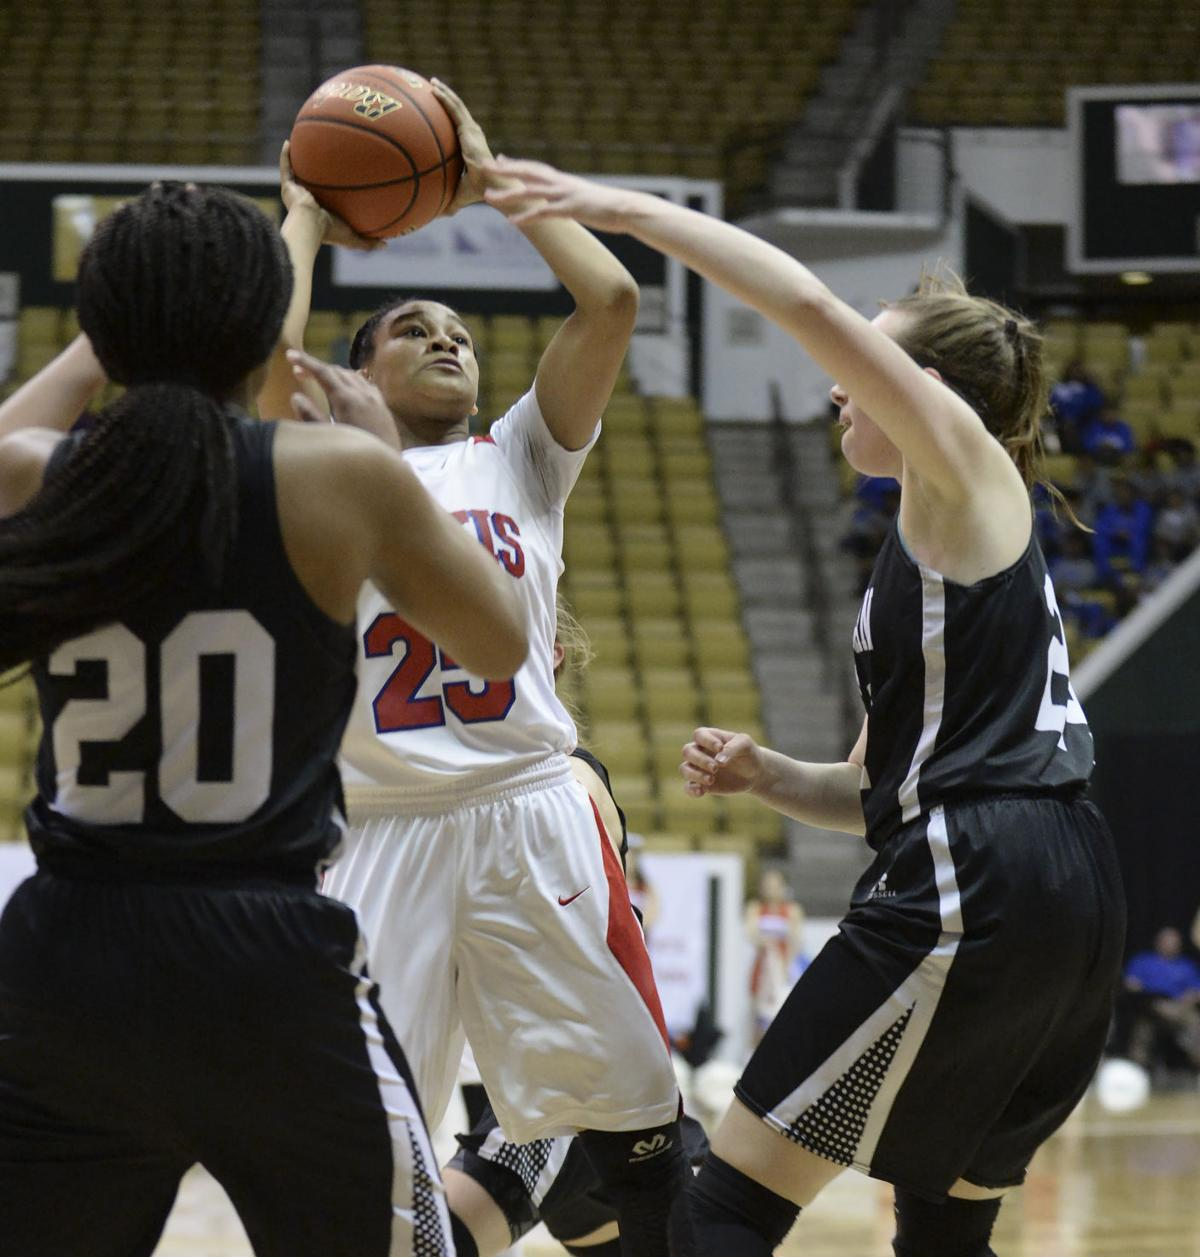 Freshman Jerkalia Jordan leads way as Curtis pulls away from Dominican in fourth quarter | High ...